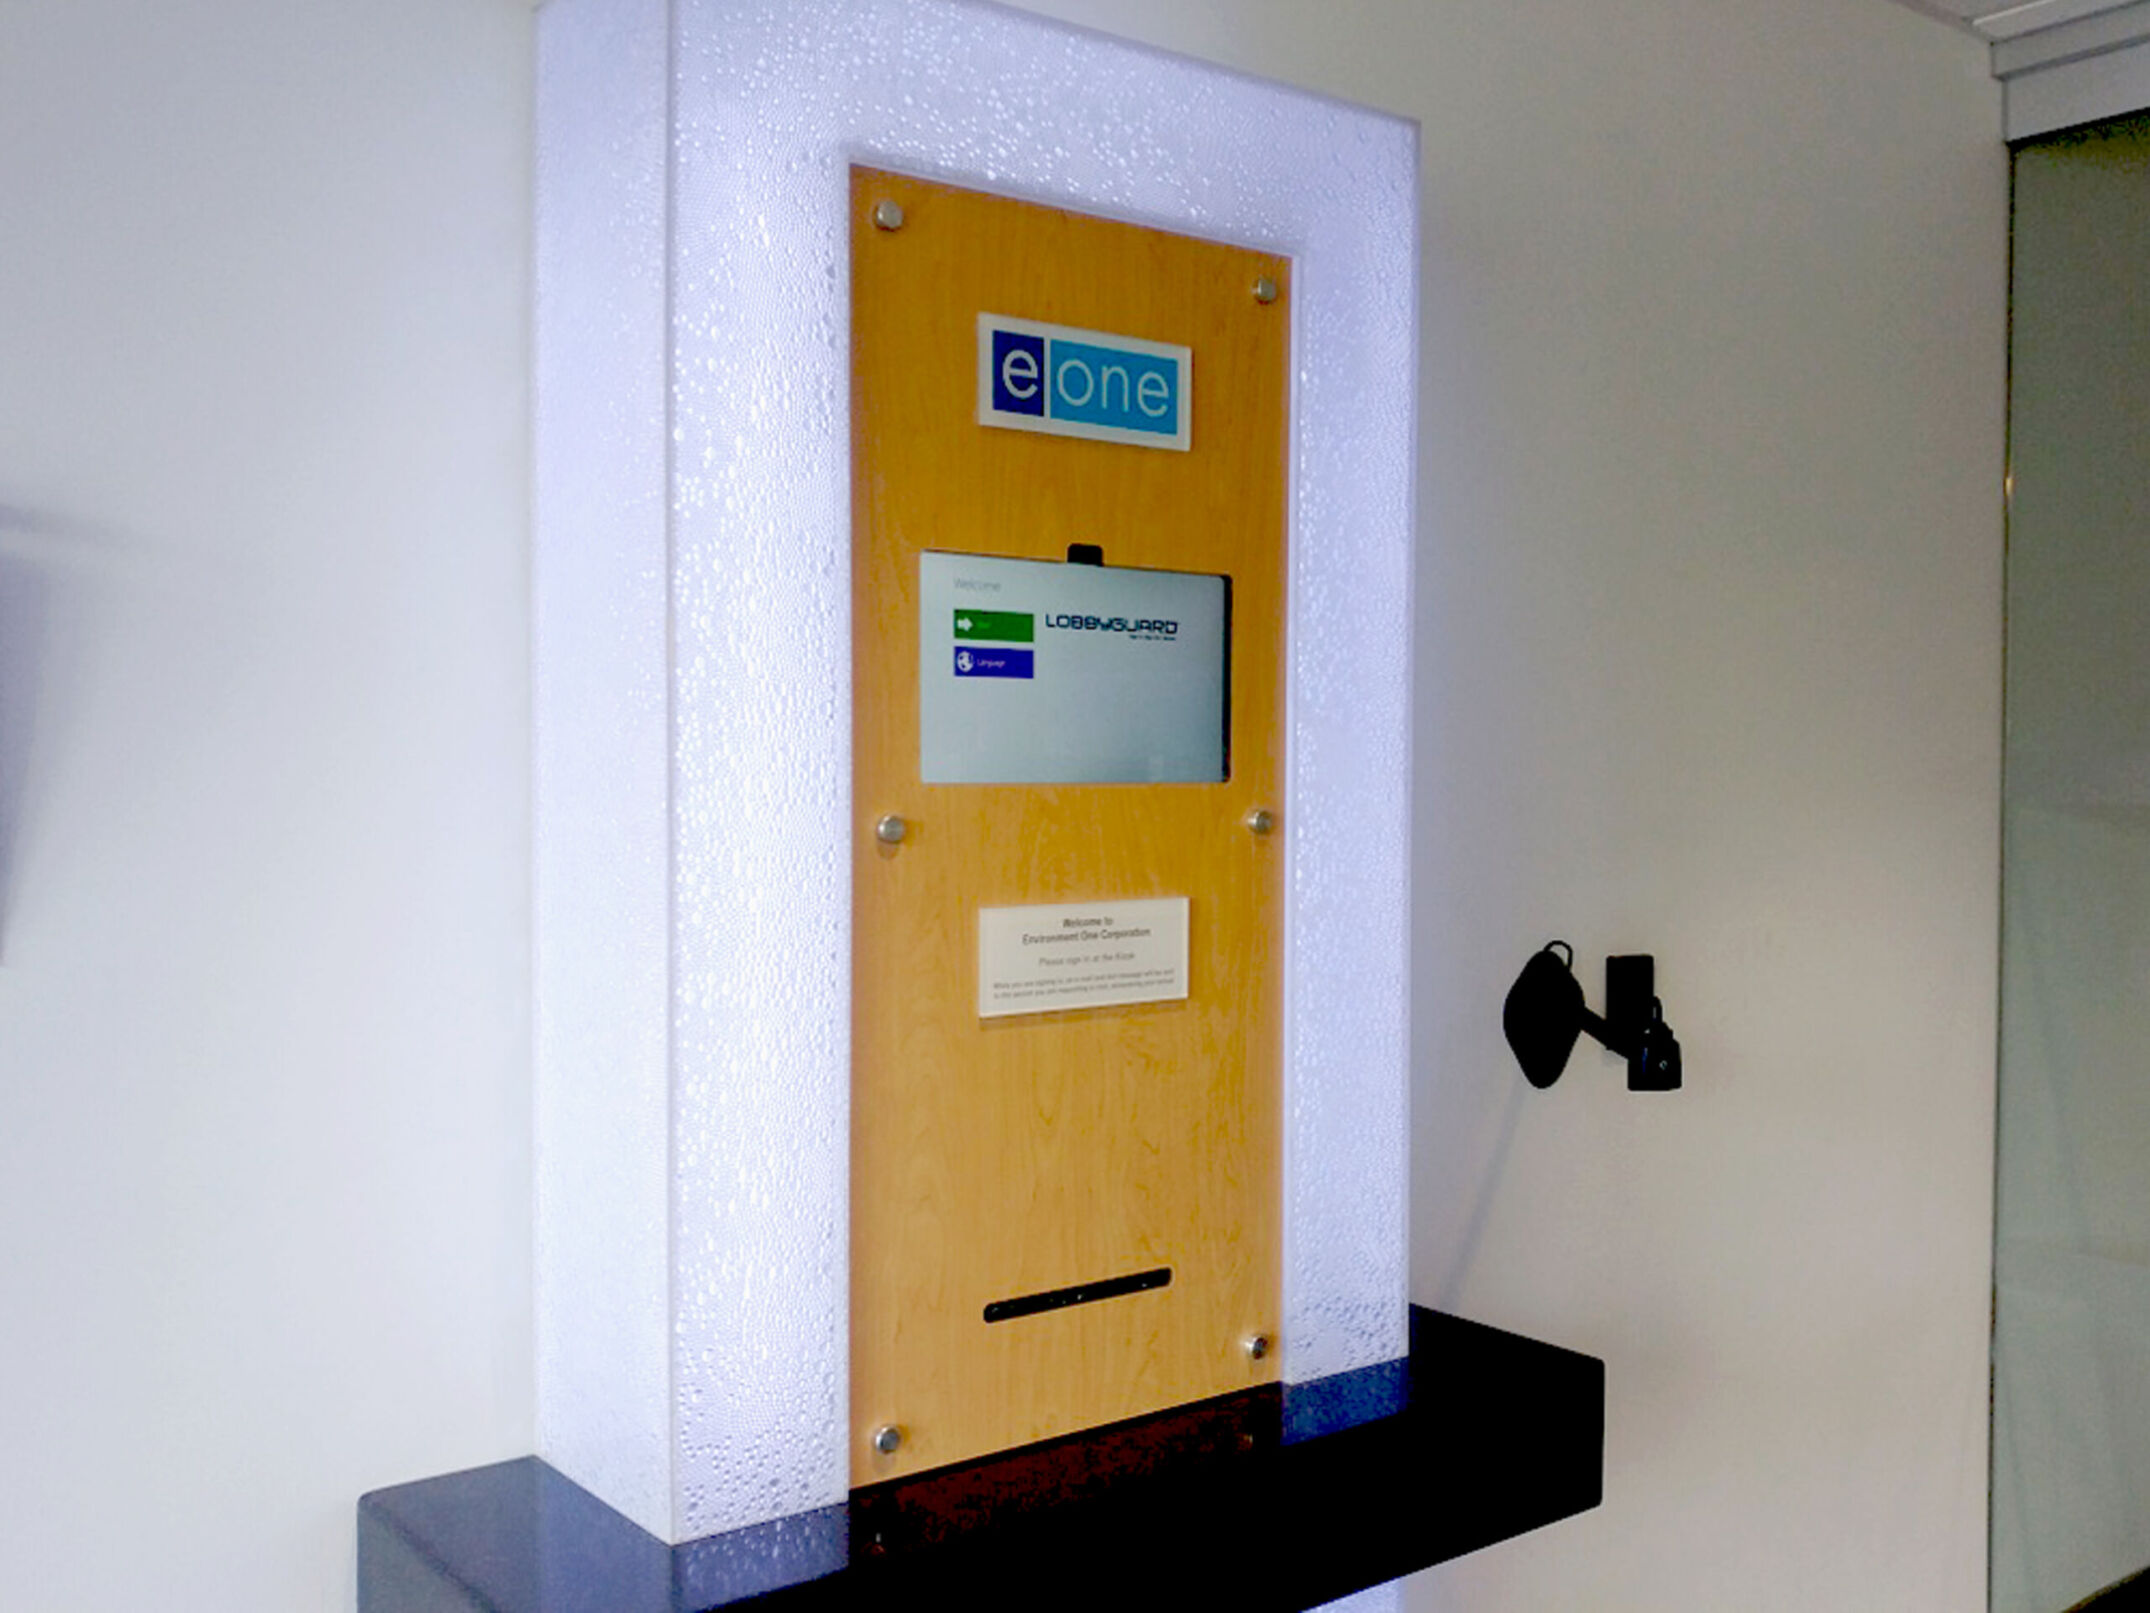 EOne lobby kiosk with monitor and lighted acrylic